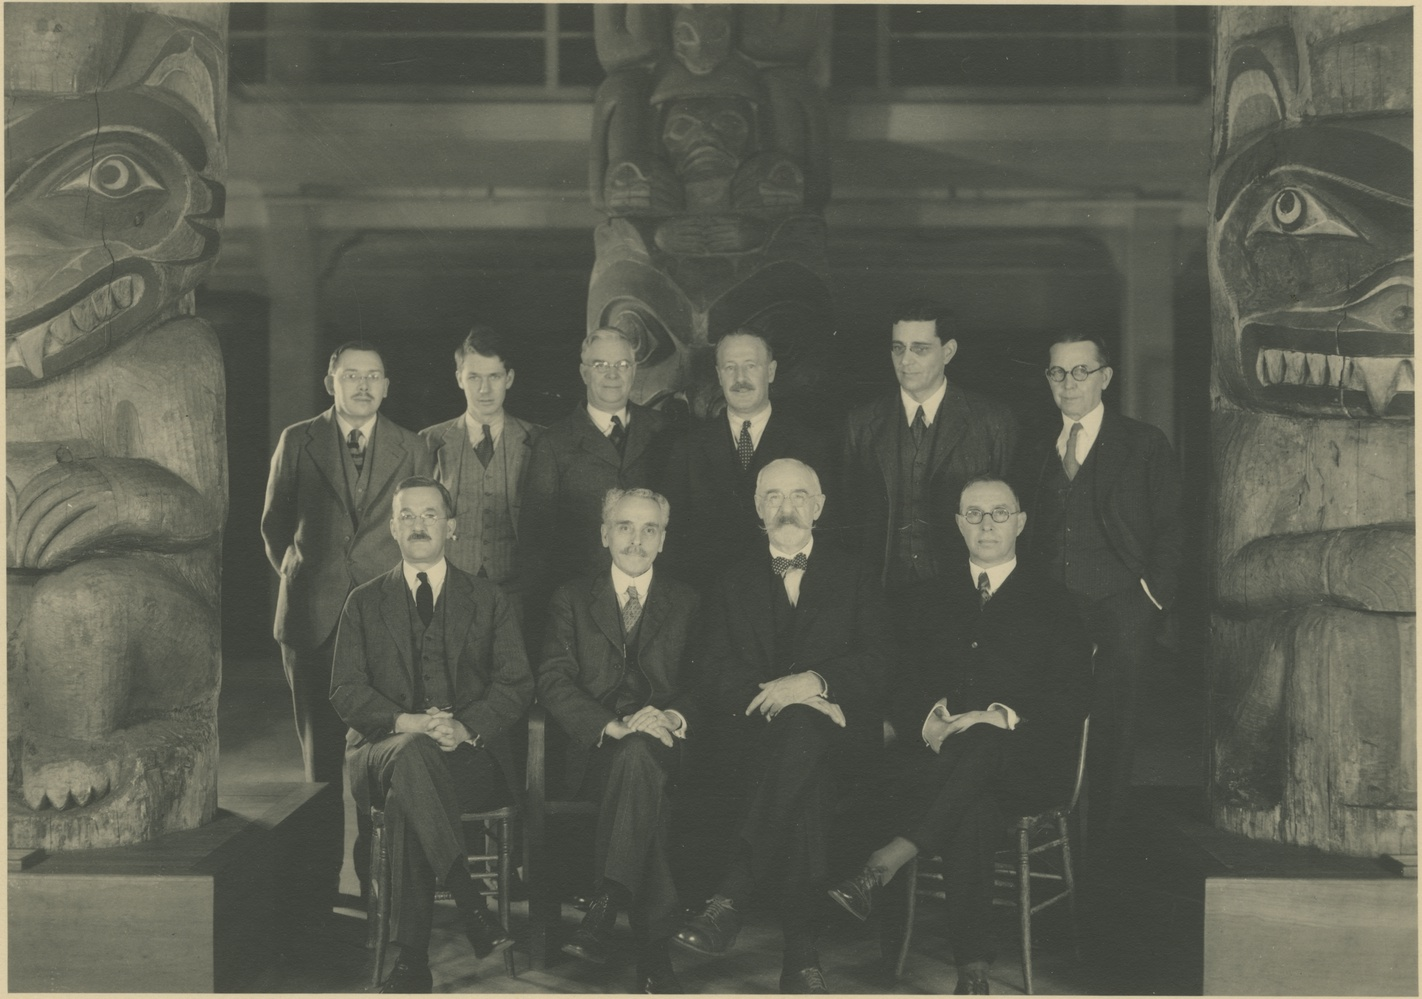 Director Reynolds and the Peabody Staff in 1930 during the peak collection era of the Peabody. © Museum Collection. Courtesy of the Peabody Museum of Archaeology and Ethnology, Harvard University, PM2004.1.324.38